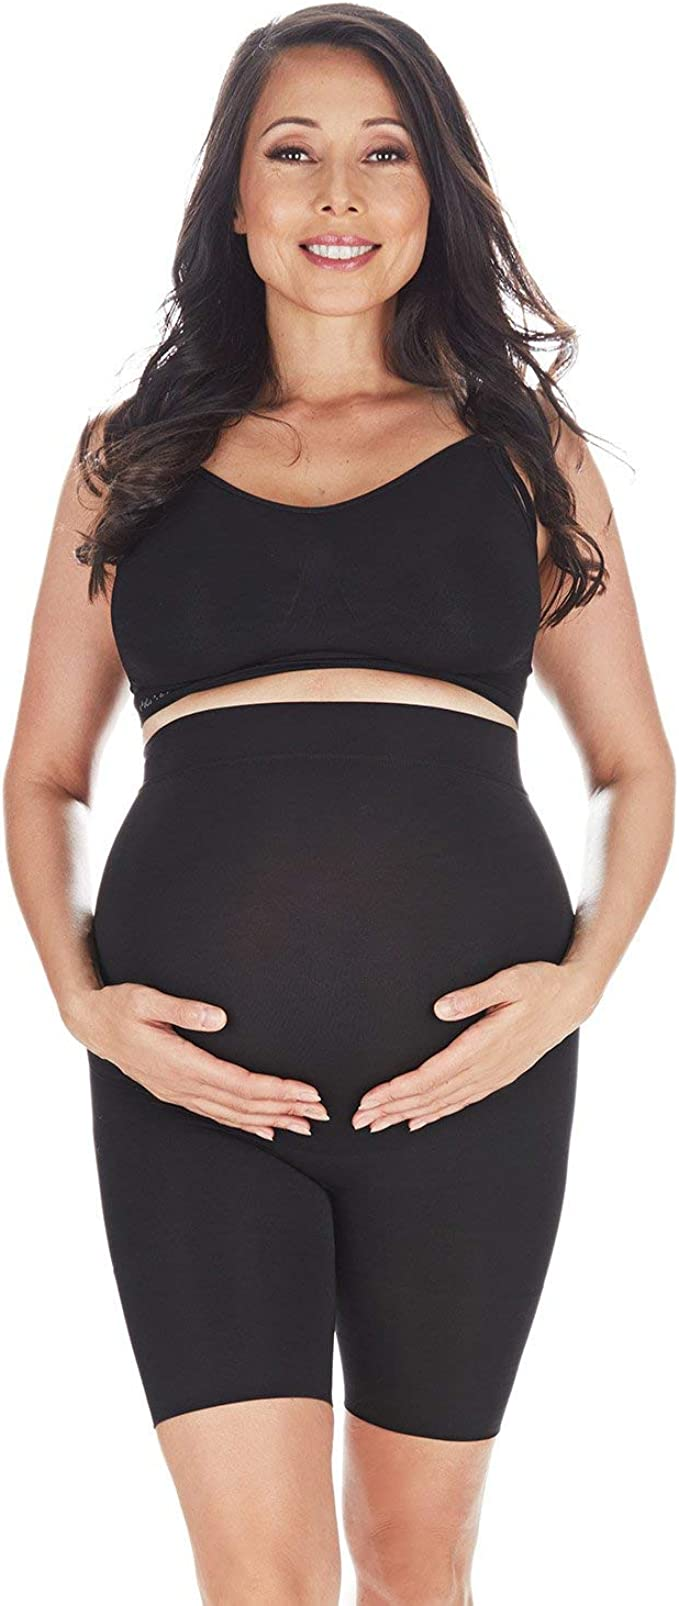 Slimme High Waist Maternity Thigh Shaper At Amazon Women S Clothing Store